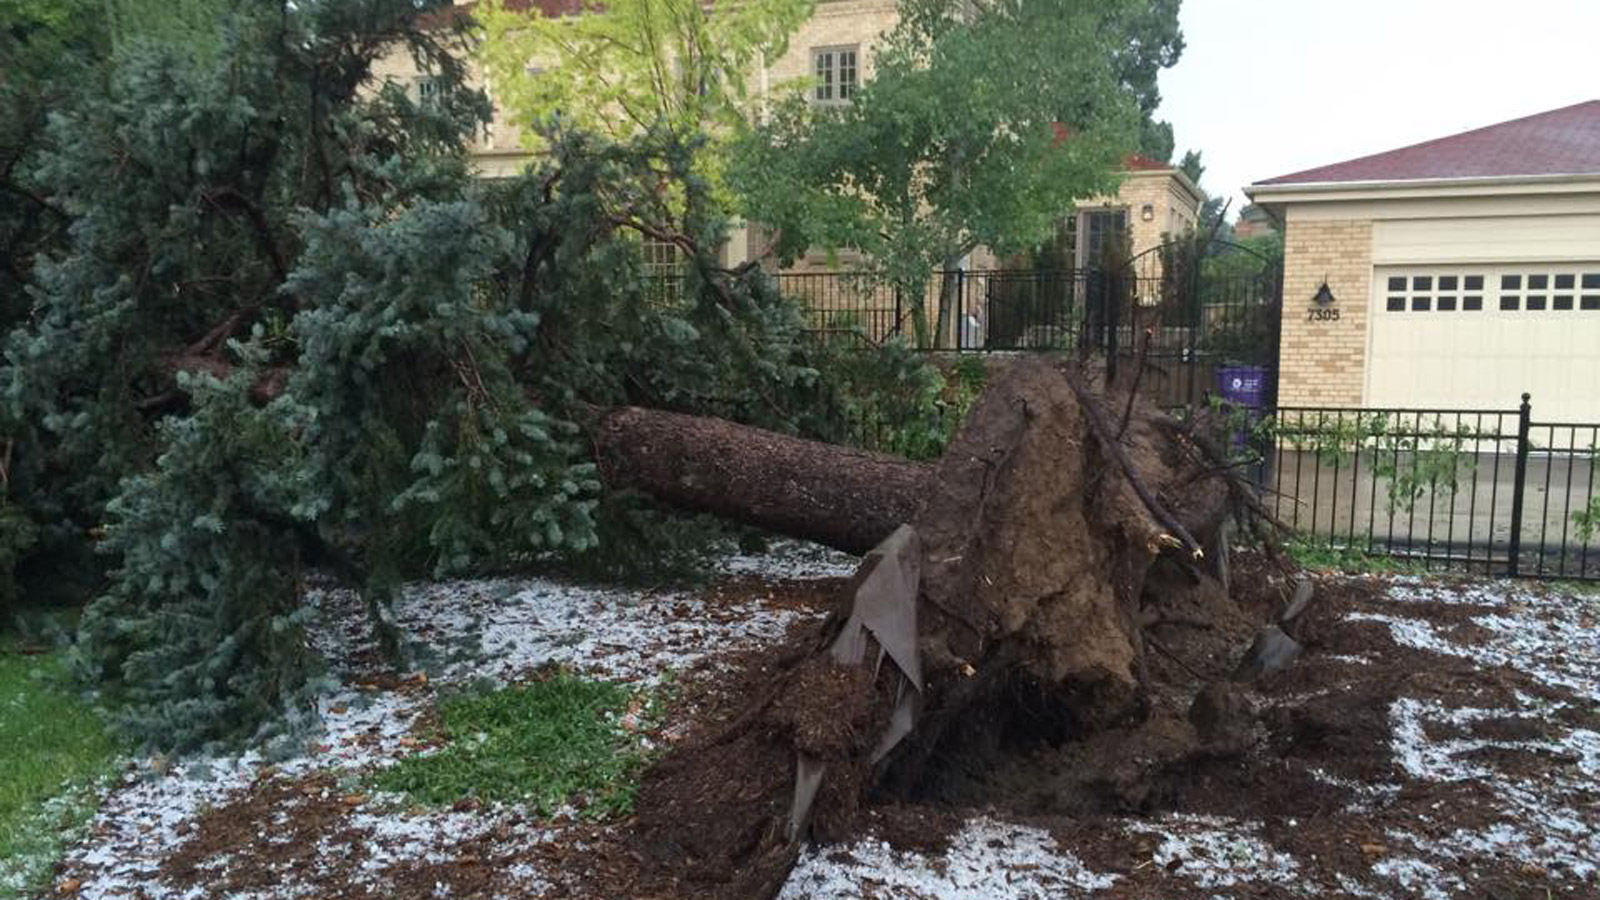 John Danni in Lowry sent in this picture of a downed tree (credit: John Danni)